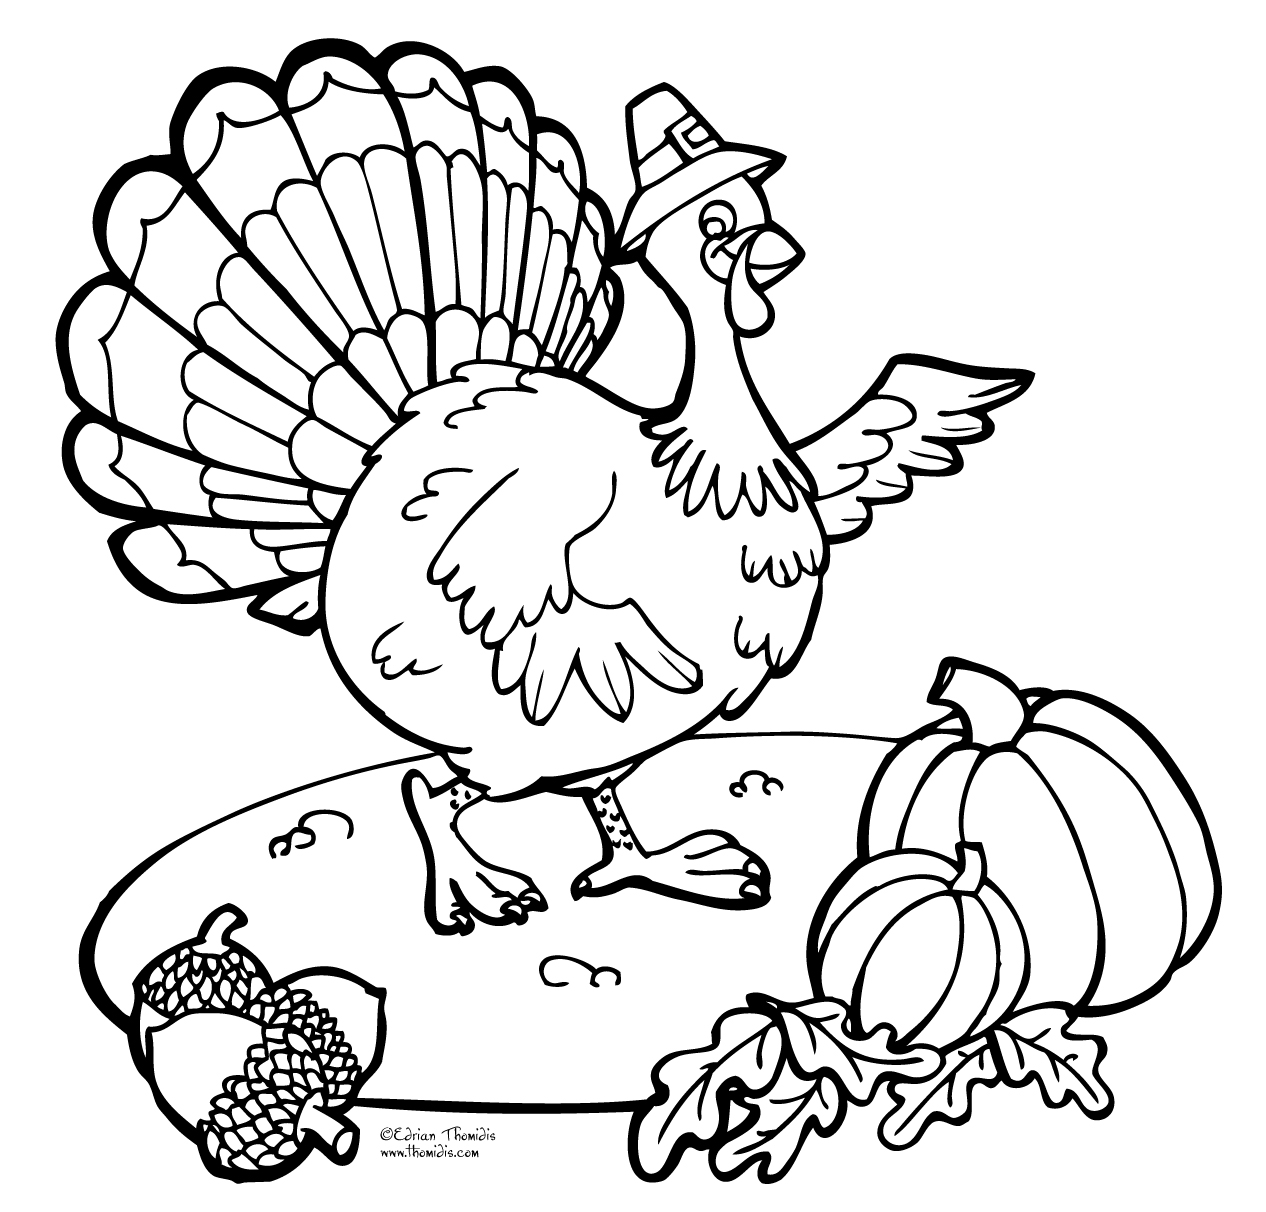 Thanksgiving coloring pages free printable pictures for Thanksgiving coloring pages printable free